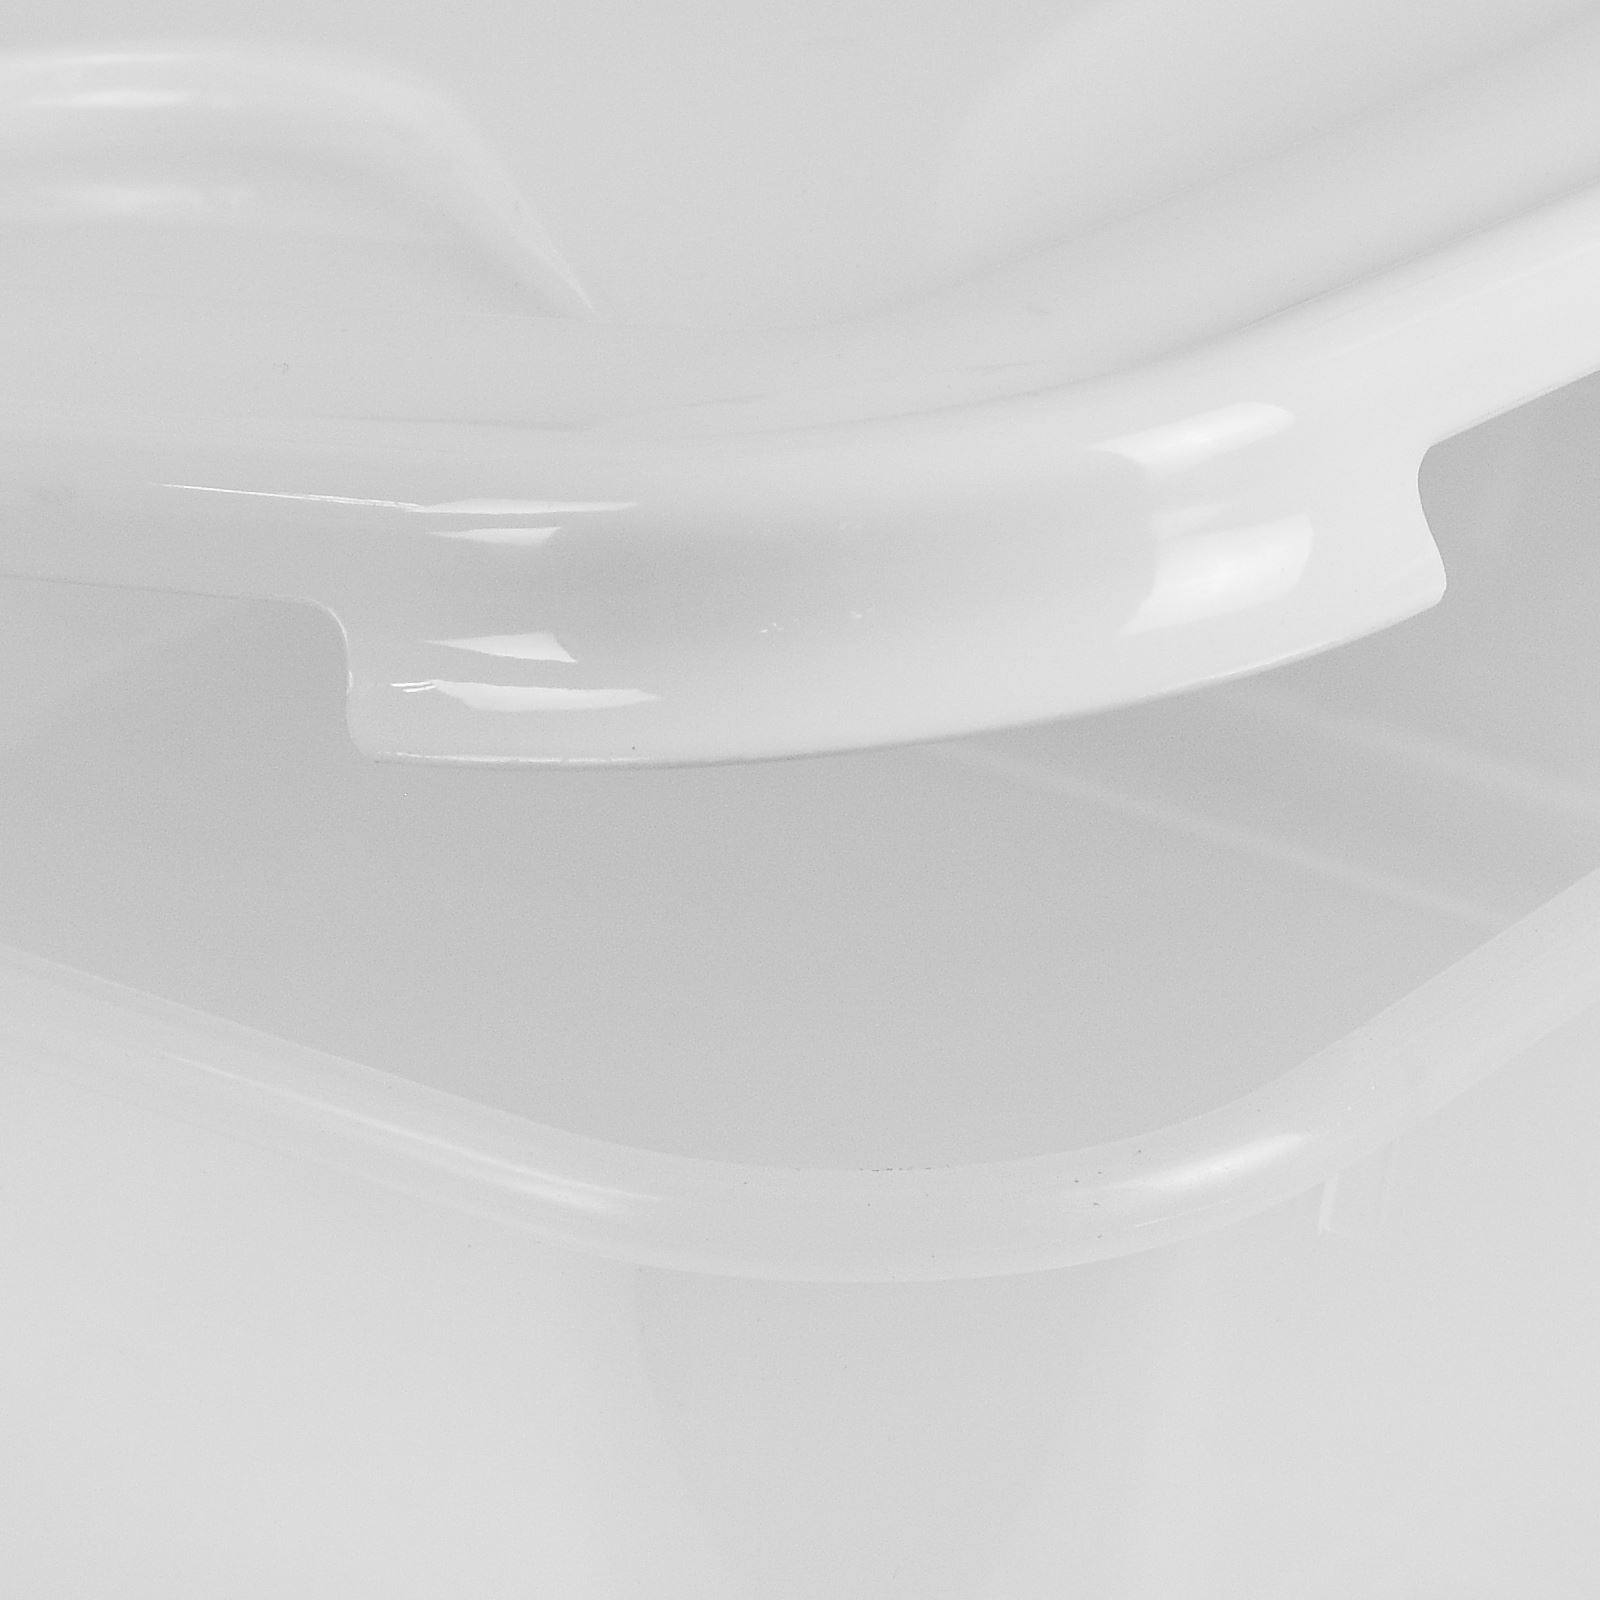 Wham-Plastic-Food-Storage-Shelf-Box-Stackable-Containers-Clear-Secure-Clip-Lid thumbnail 11